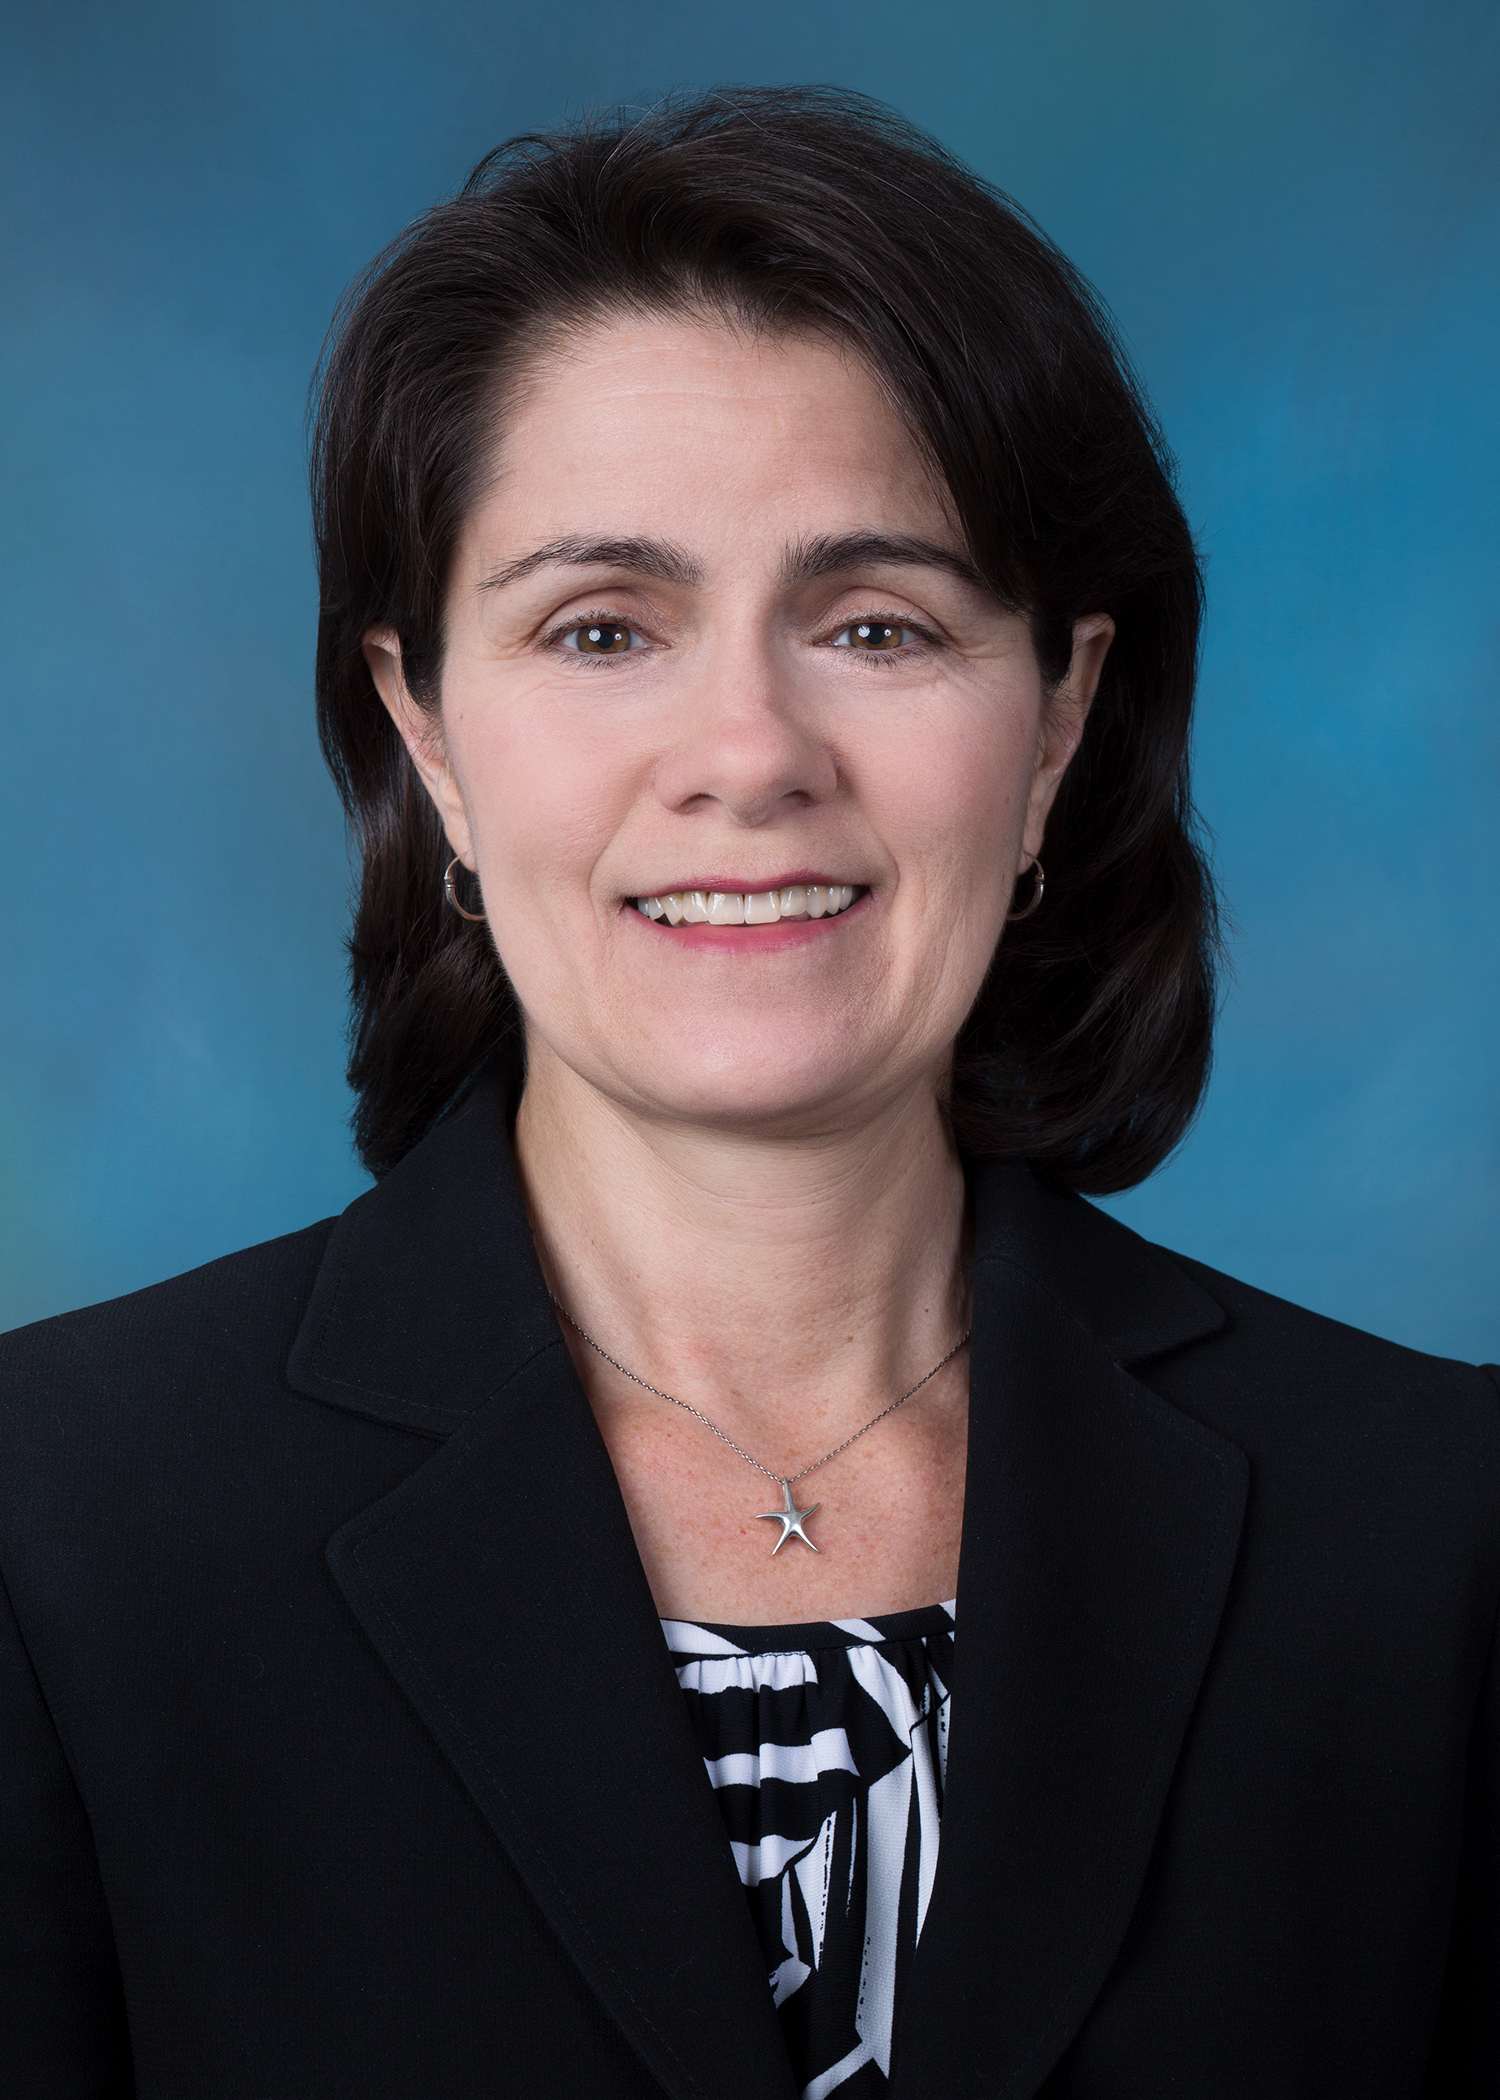 Geannine L. Darby, CFRE